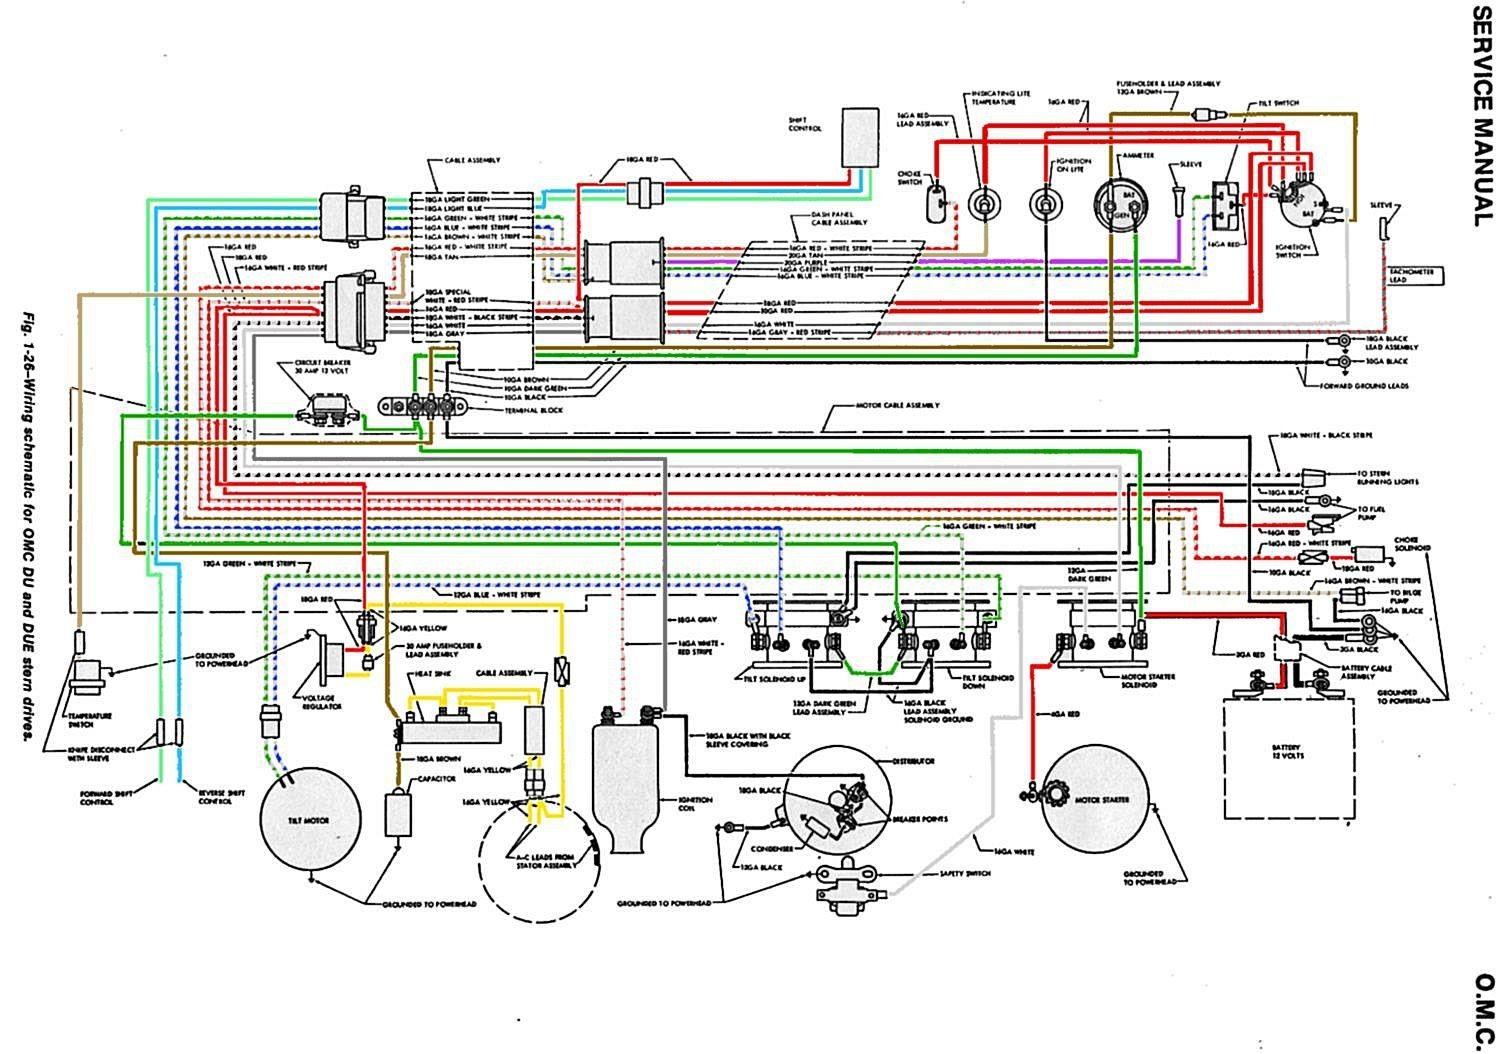 Wiring diagram for johnson outboard motor new wiring diagram image 1966 evinrude 80hp v4 wiring diagram cheapraybanclubmaster Gallery